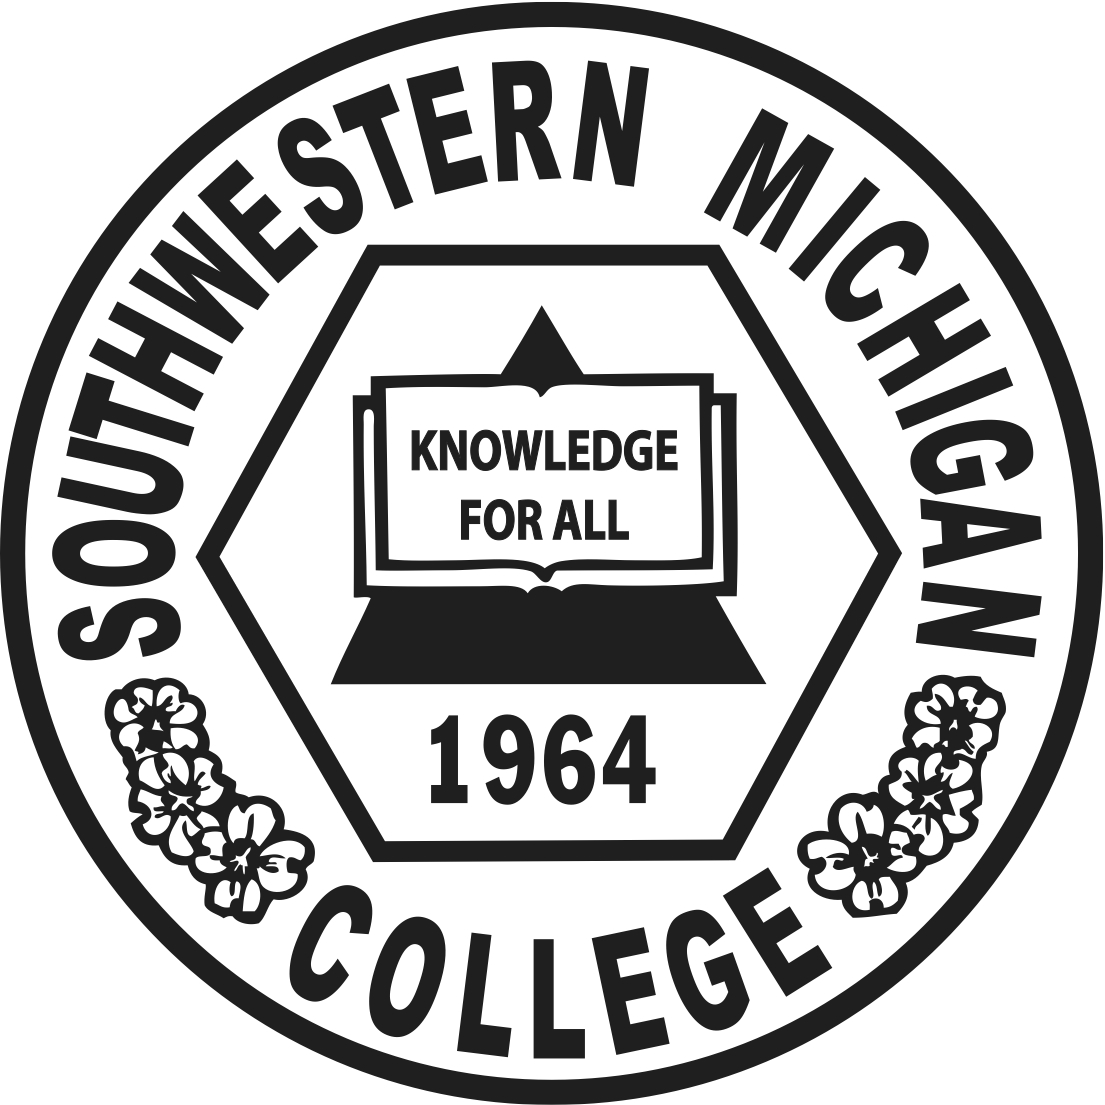 The official college seal